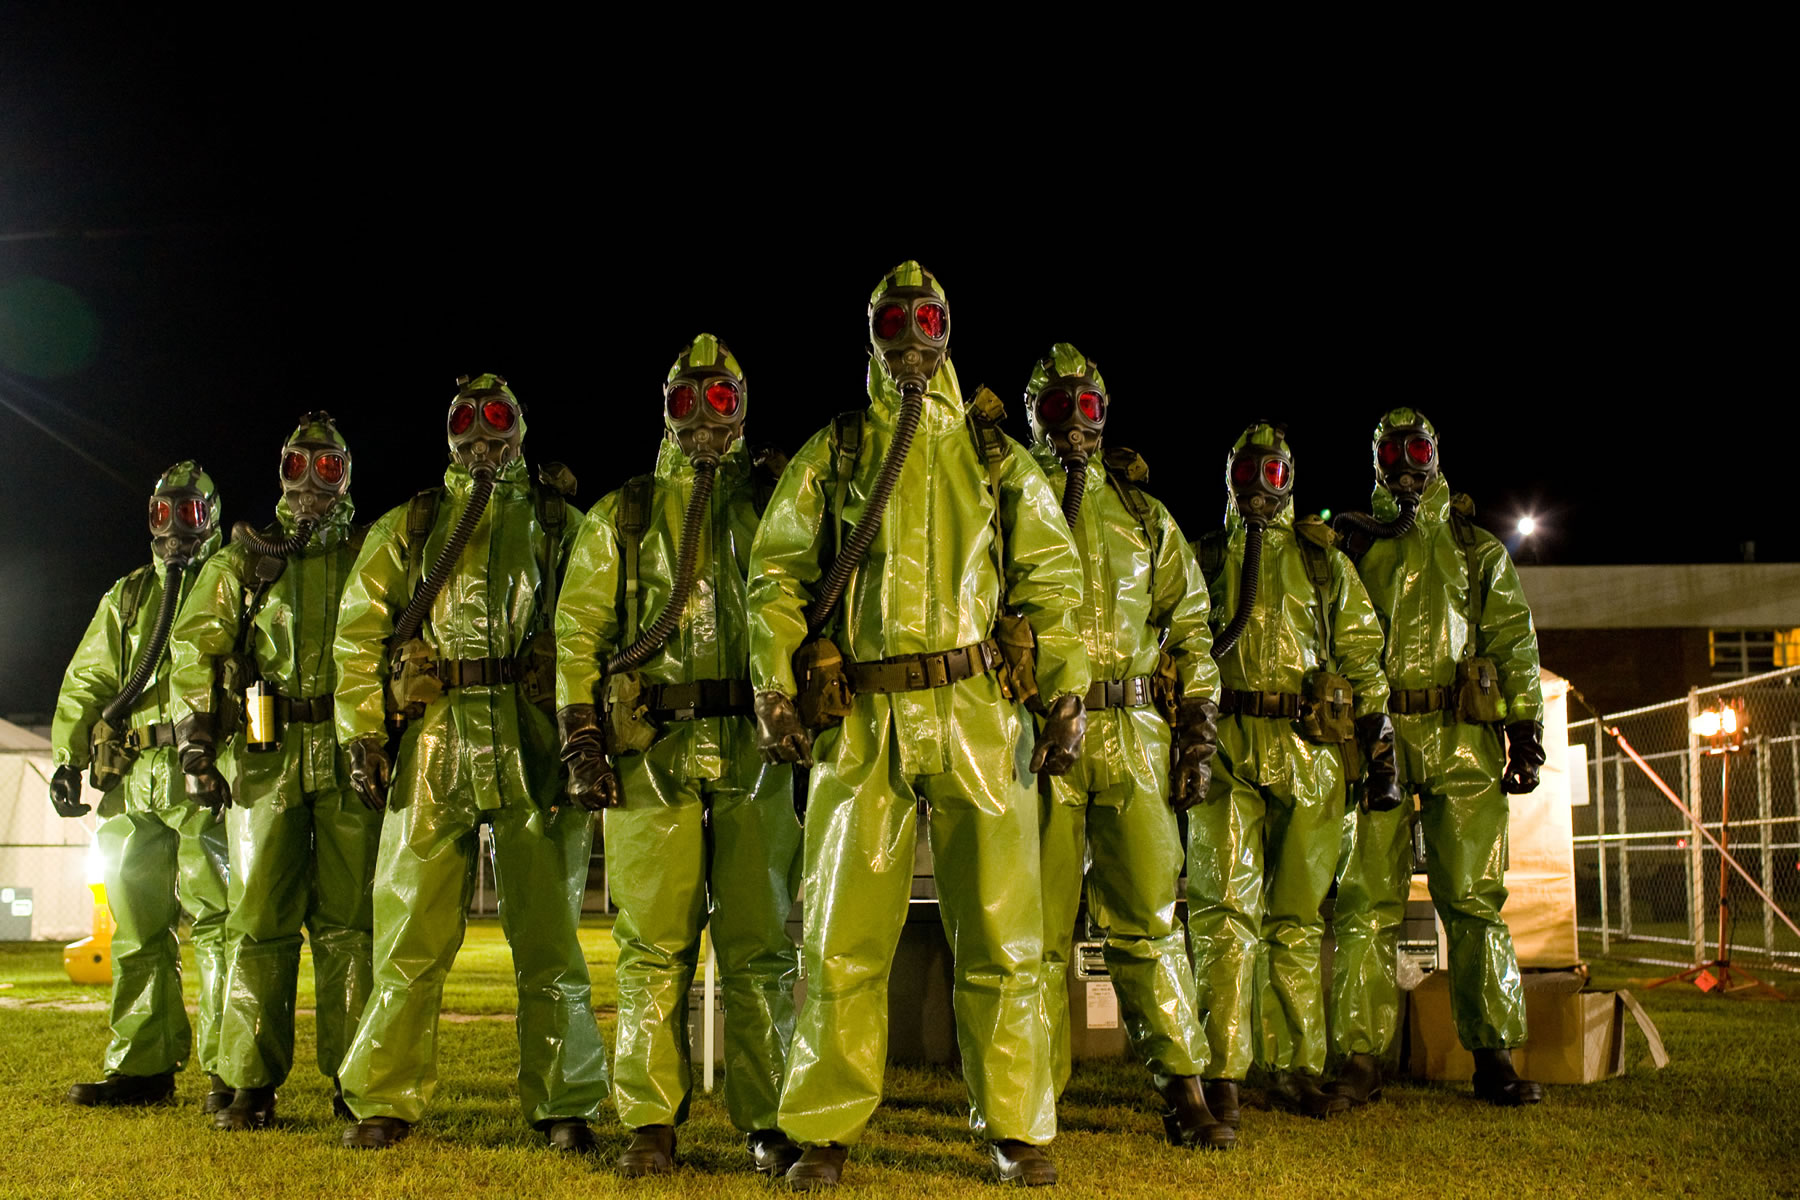 Sinister vac suited military in The Crazies (2010)